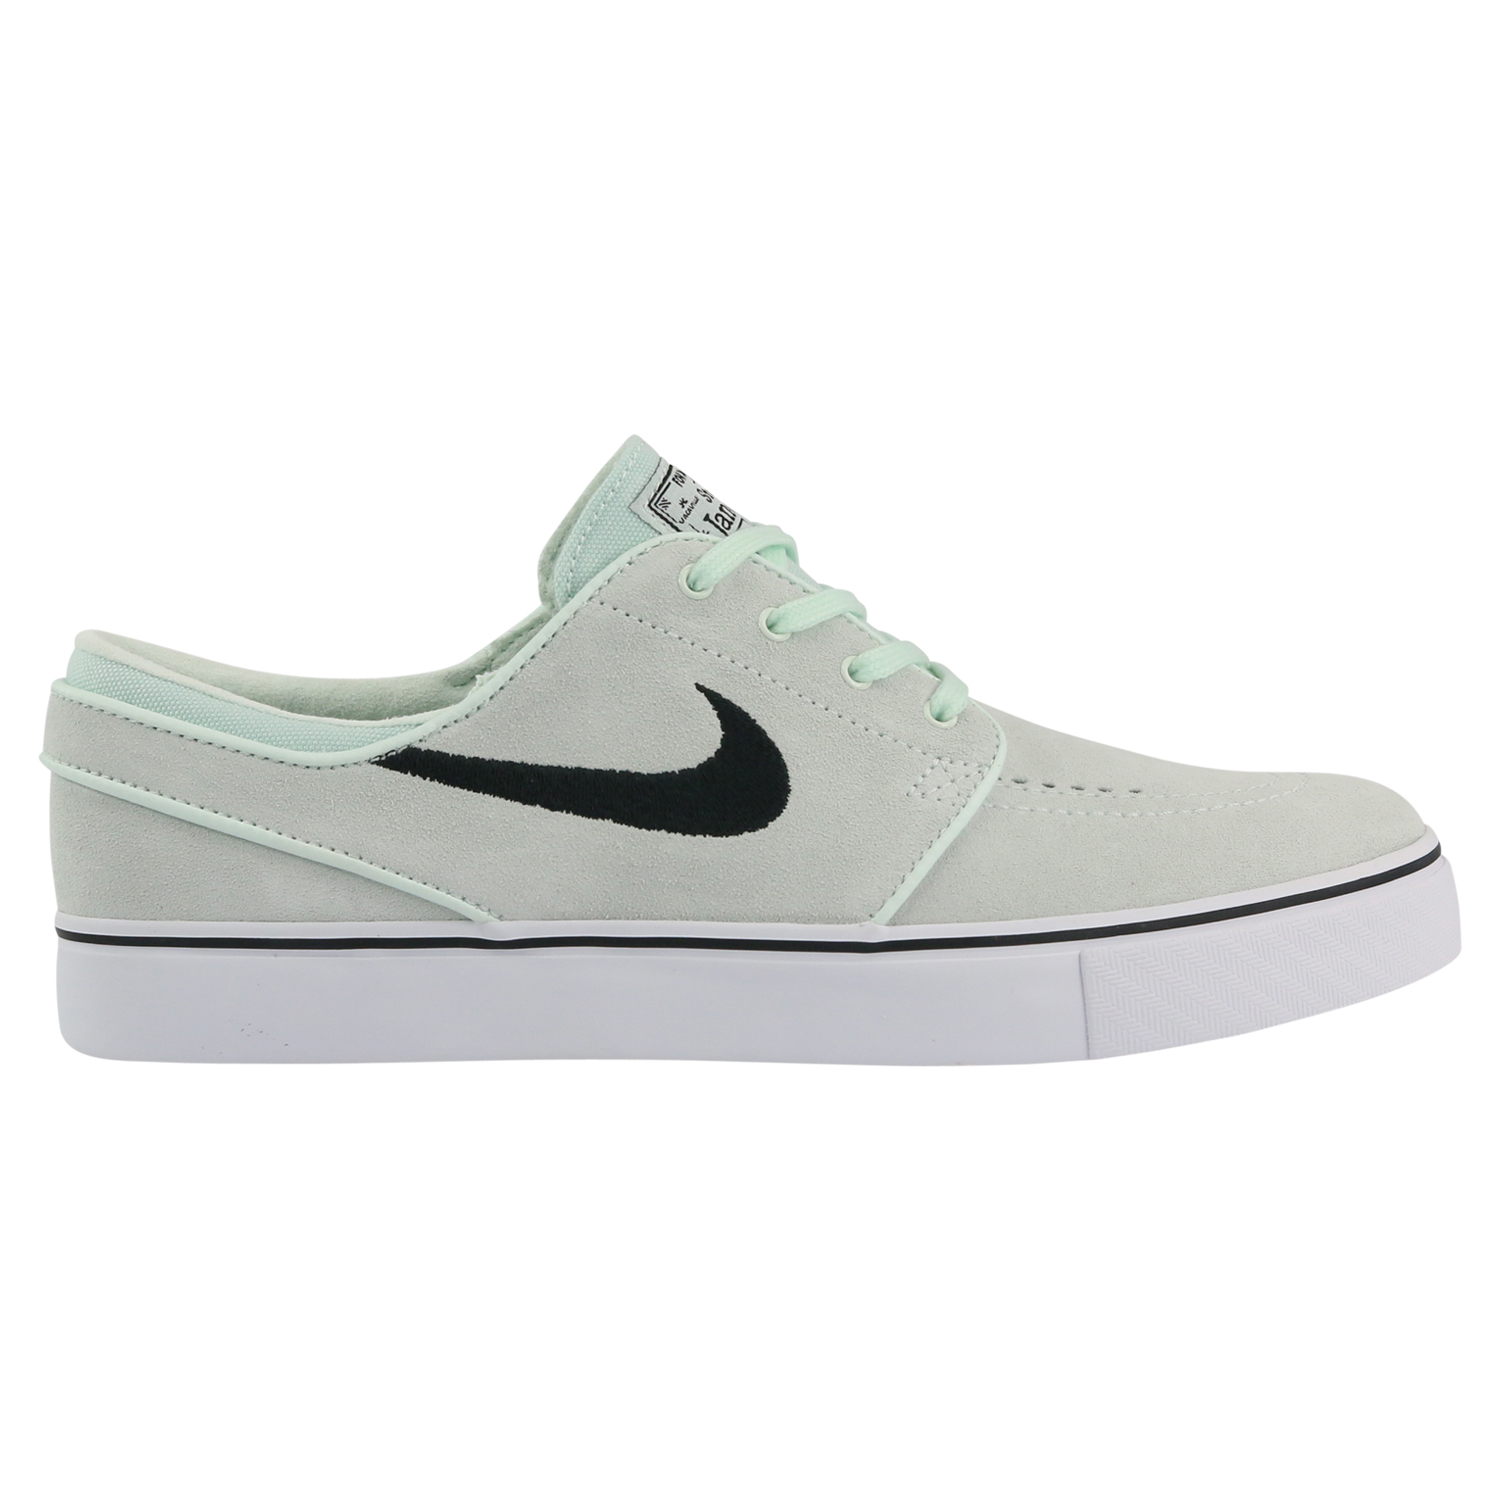 nike sb zoom stefan janoski schuhe turnschuhe sneaker. Black Bedroom Furniture Sets. Home Design Ideas